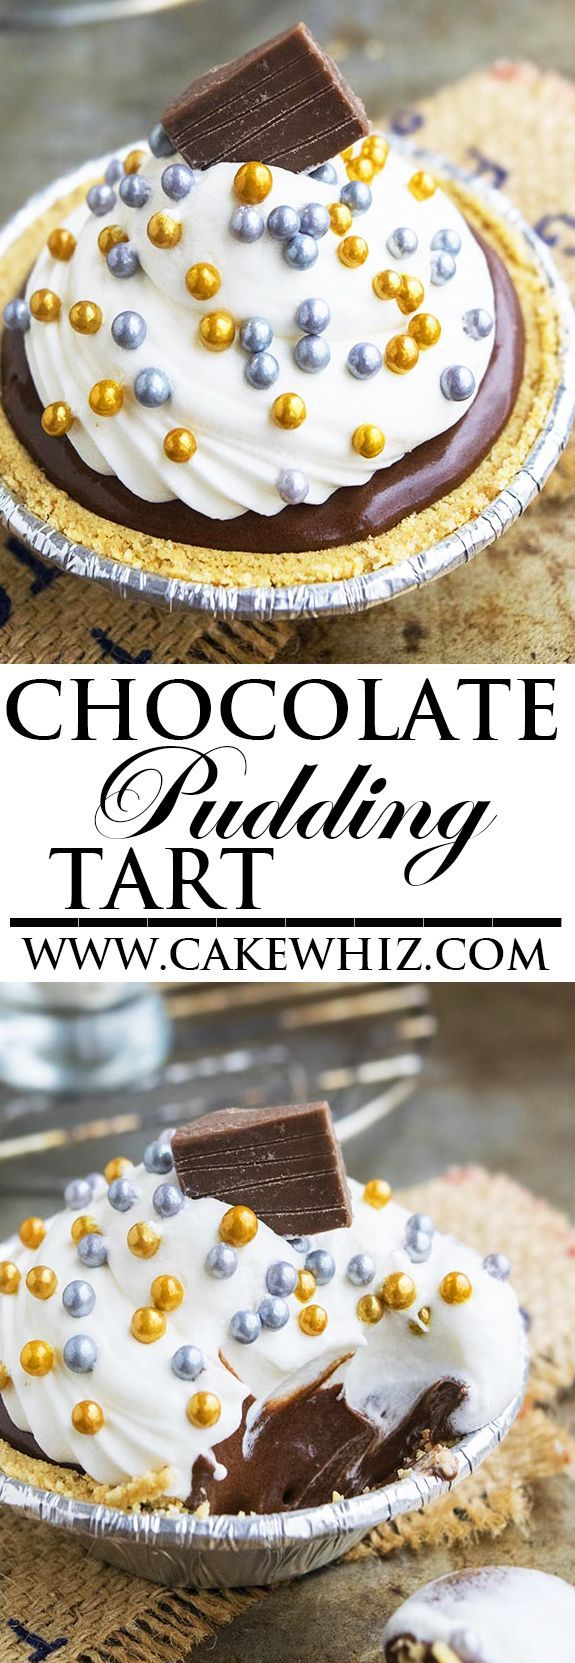 This easy no bake CHOCOLATE CORNSTARCH PUDDING TART is egg free and made with only a few simple ingredients from your pantry. This simple chocolate pudding is rich and creamy and can be enjoyed as is, or in a pie or tart filling. From http://cakewhiz.com